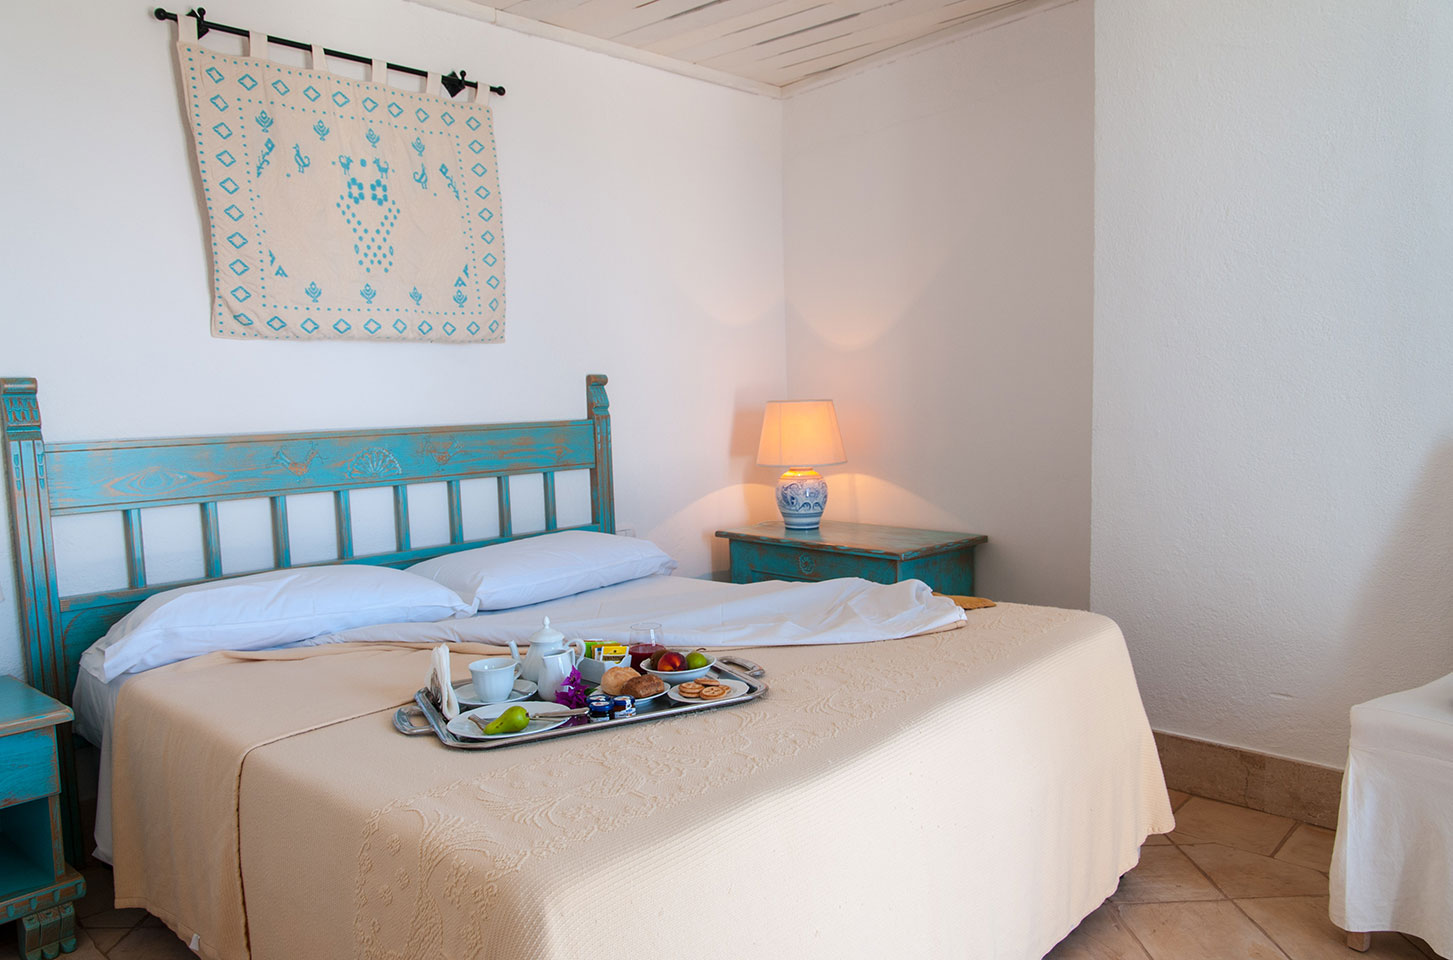 How much is the apartment by the sea in Porto Cervo